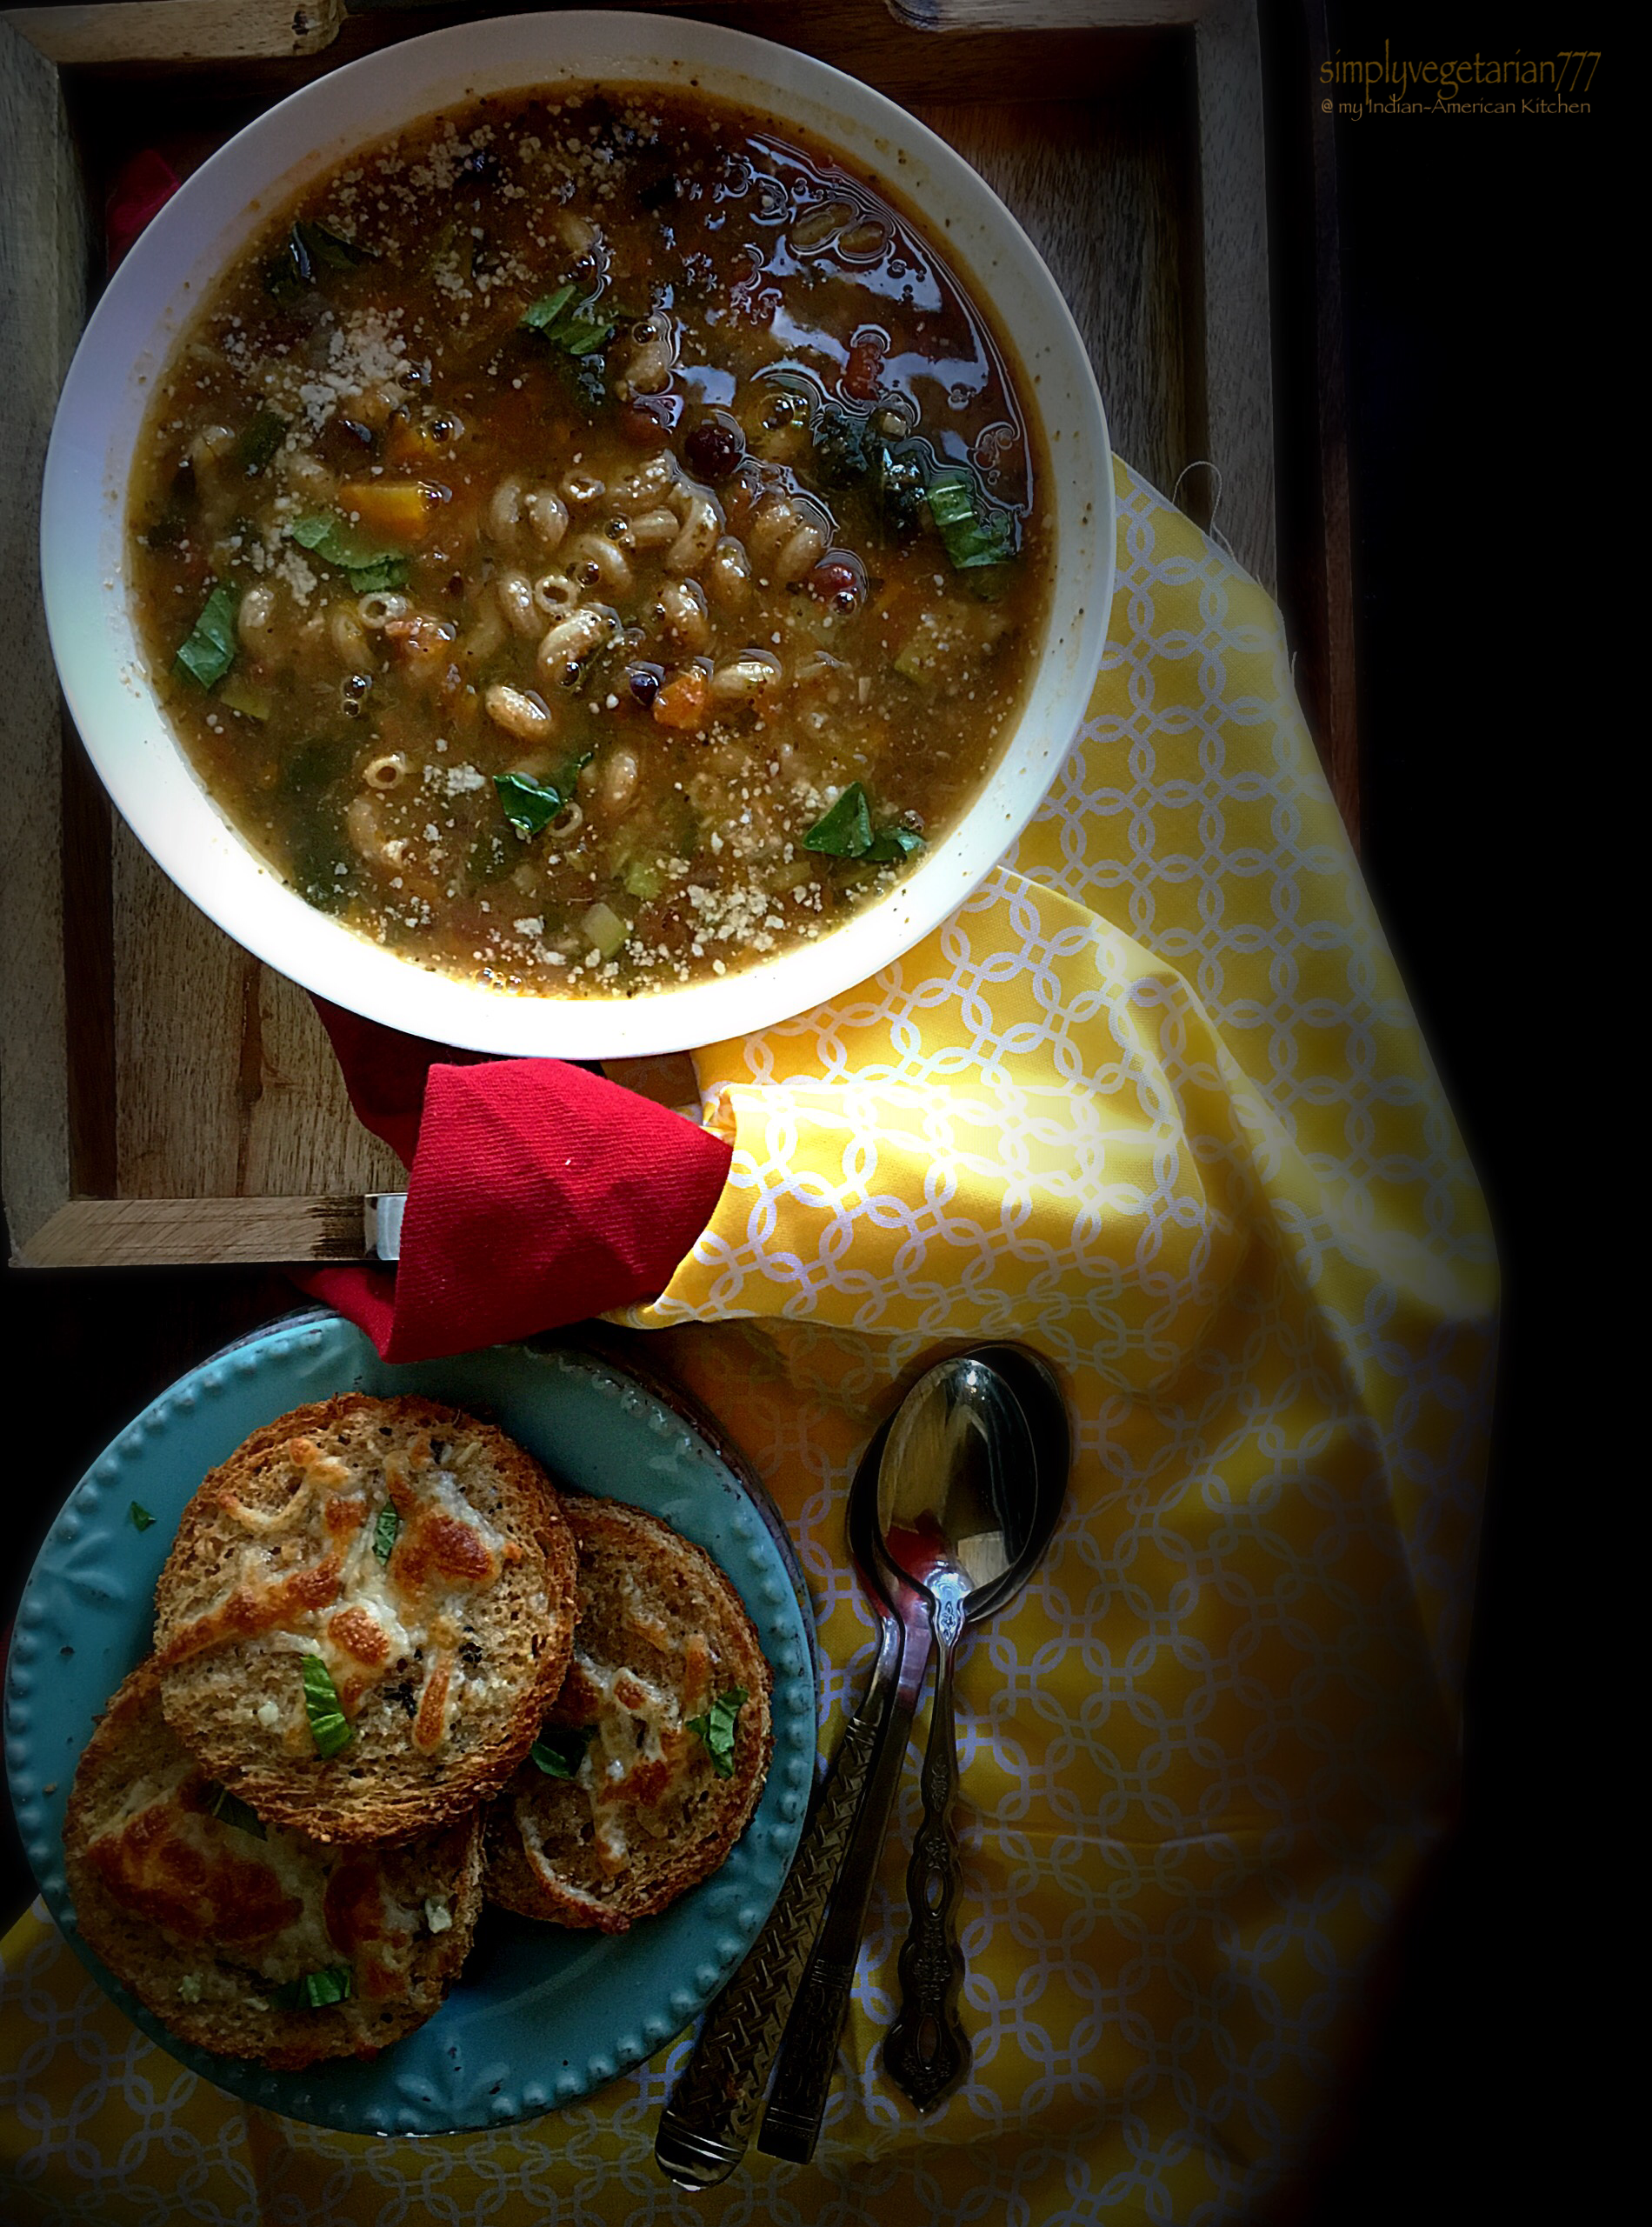 Home-Style Minestrone Soup & Garlic Cheese Discs